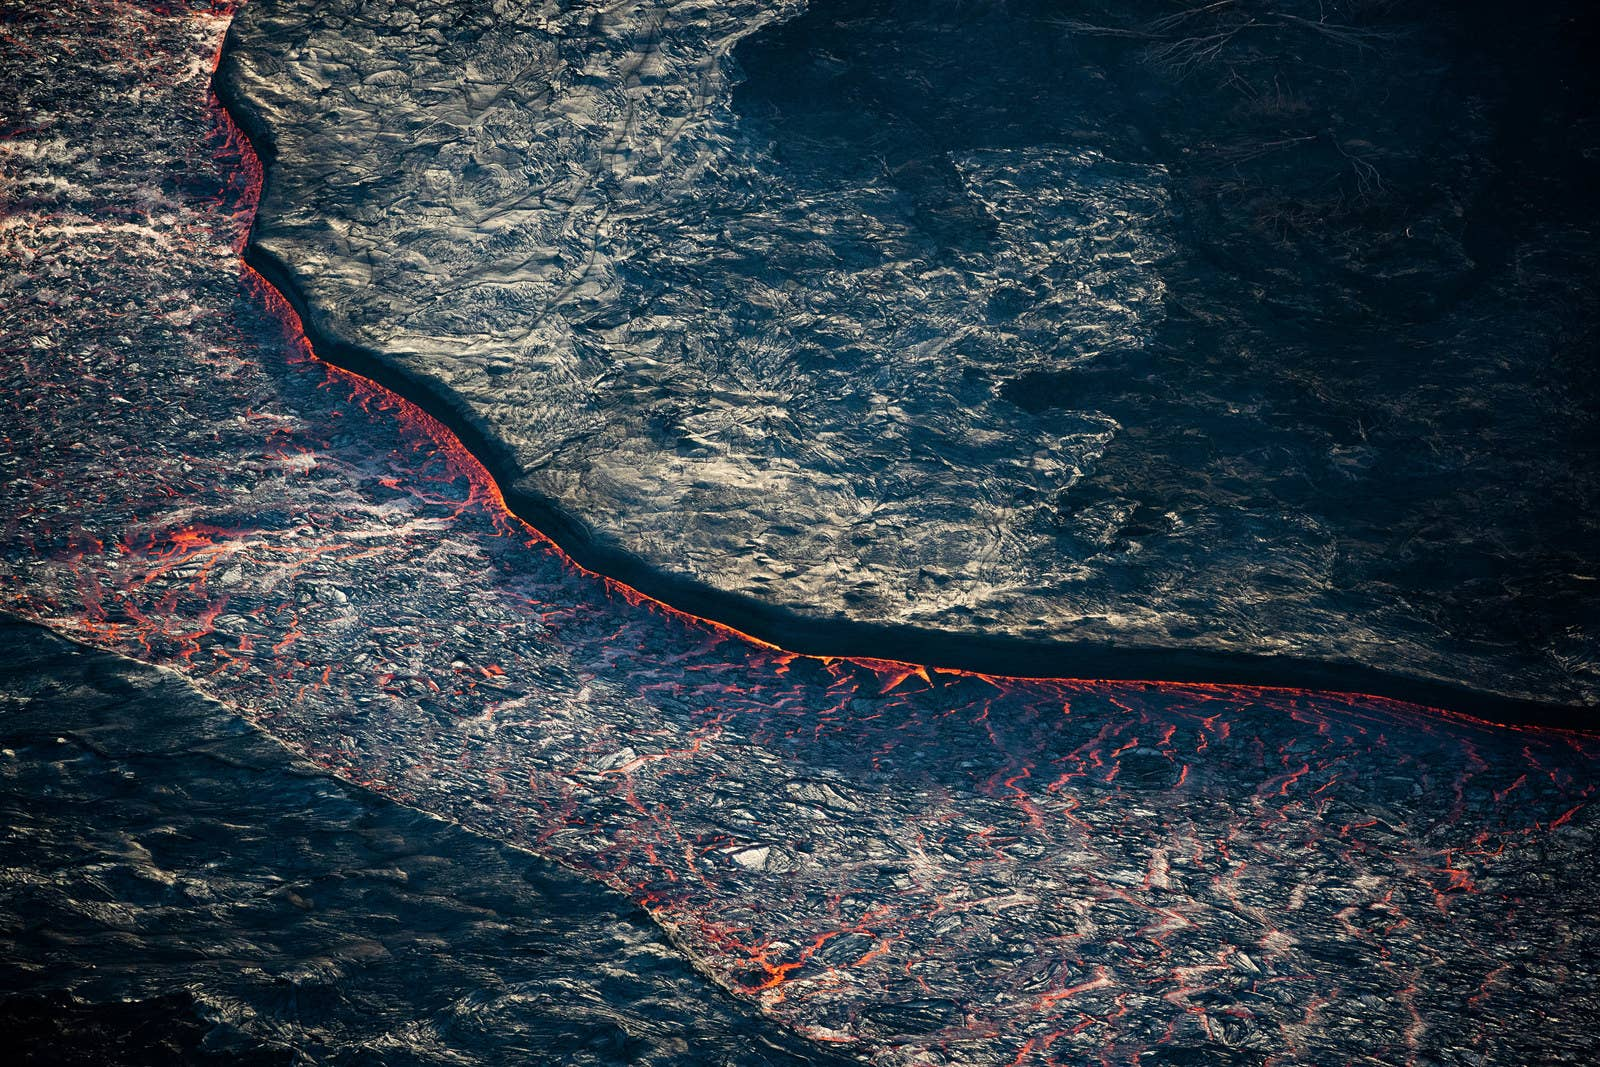 A river of red-hot lava is seen flowing through a channel of hardened lava. At its peak, the lava has moved as fast as 22 mph.